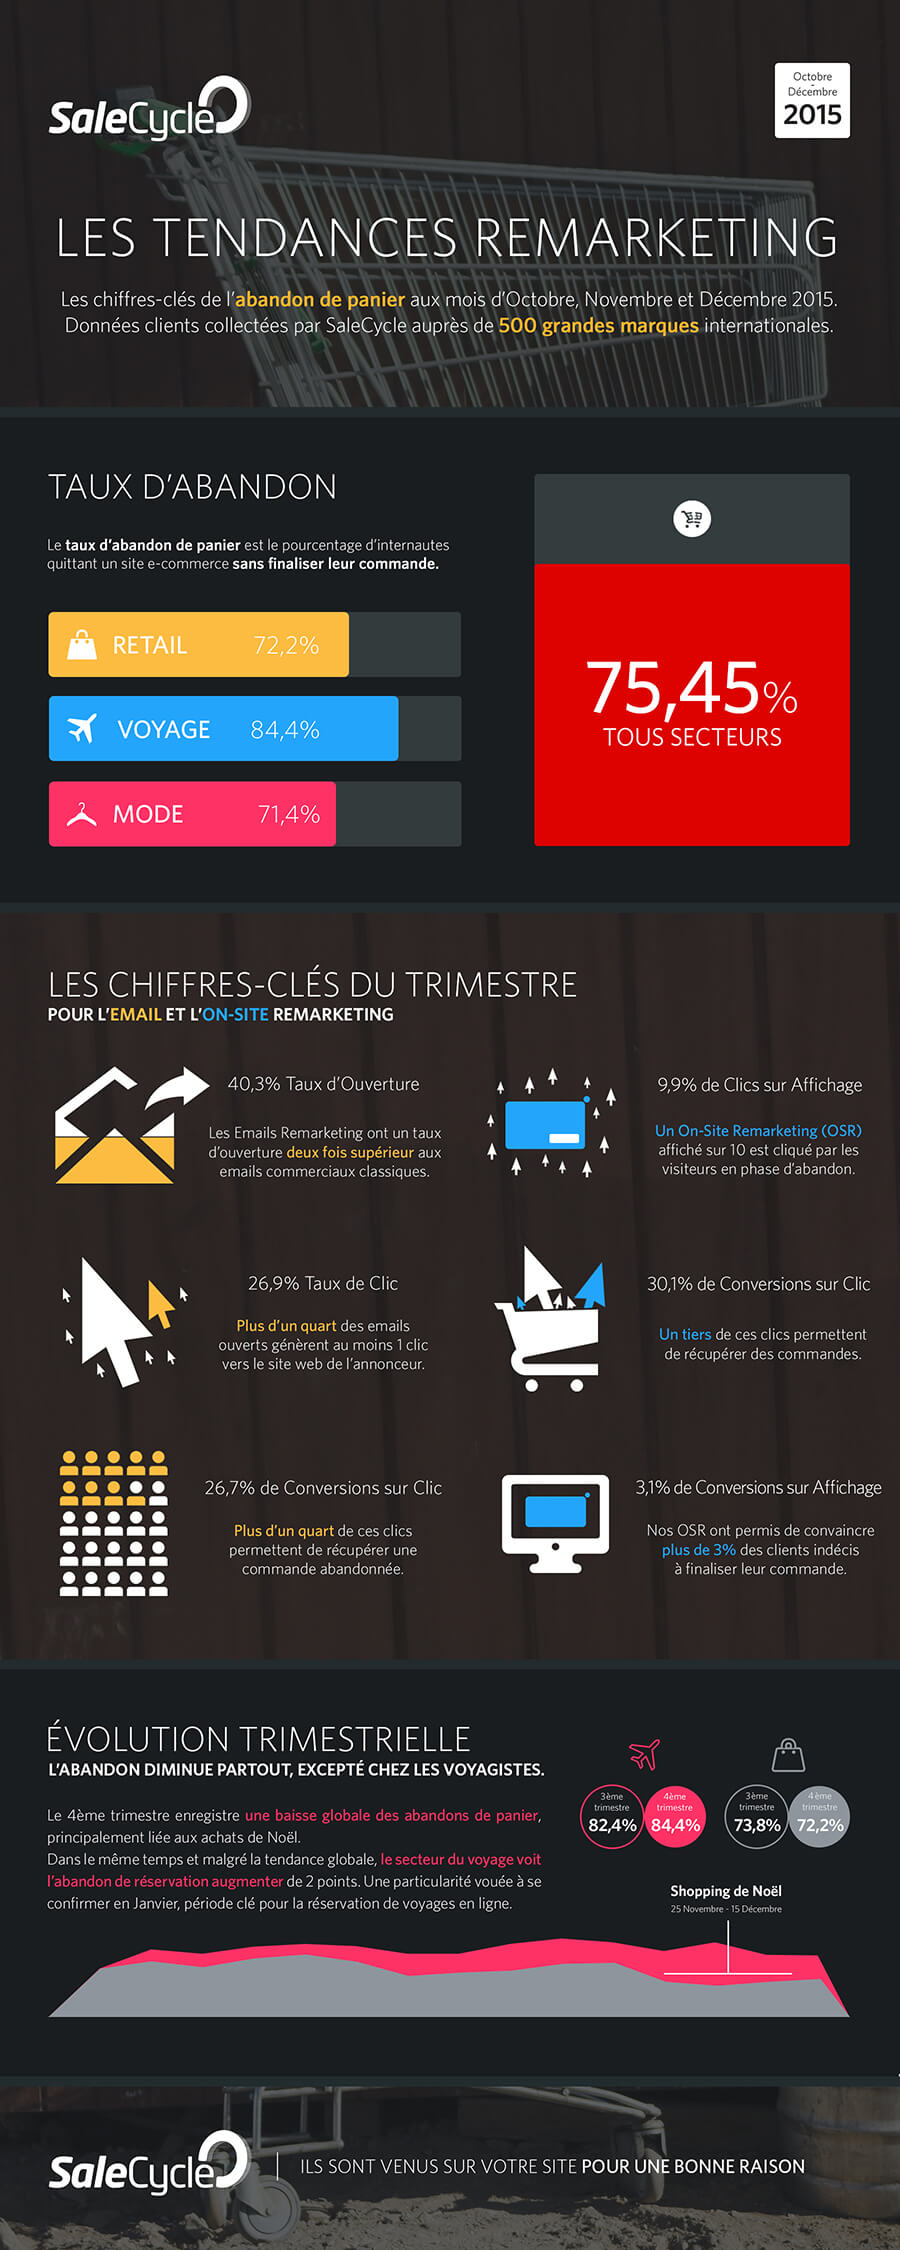 Tendances Remarketing Q3 2015